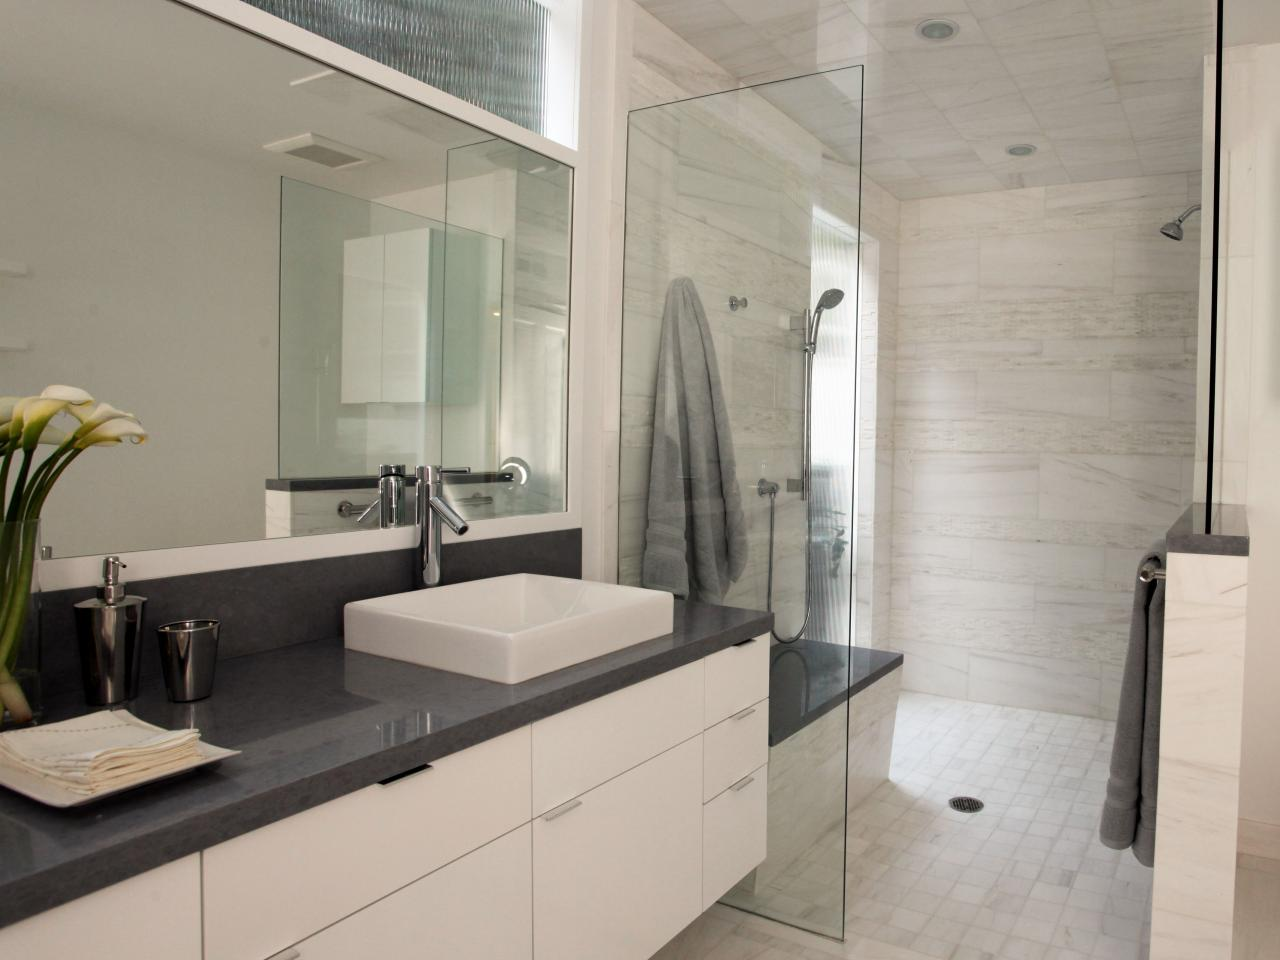 Model Blackwhitecontemporarybathroomtile700480  Freshomes